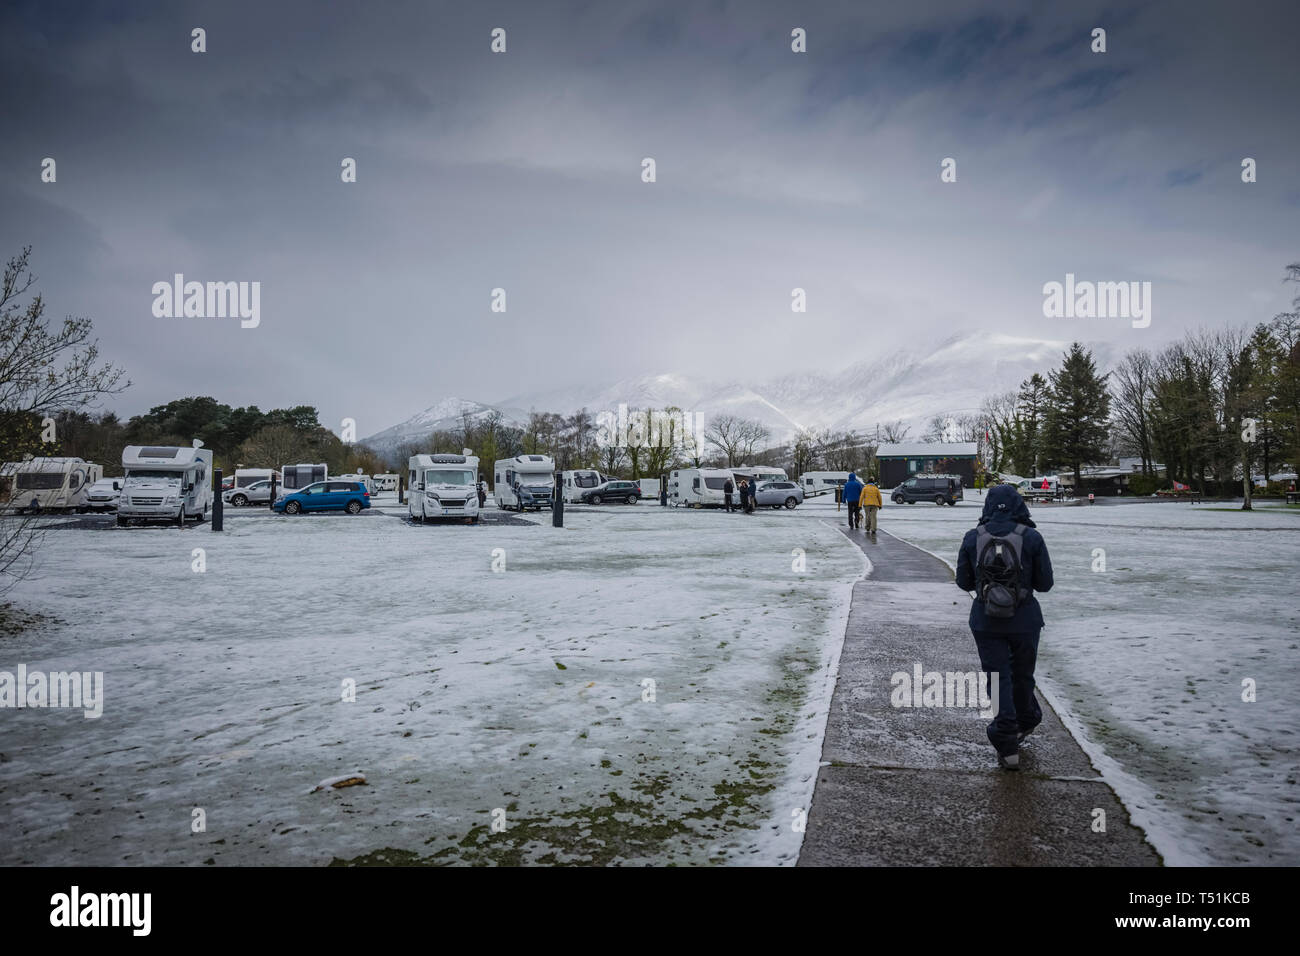 Camping and Caravanning Club site with Spring snow at Keswick, Cumbria, UK. Stock Photo